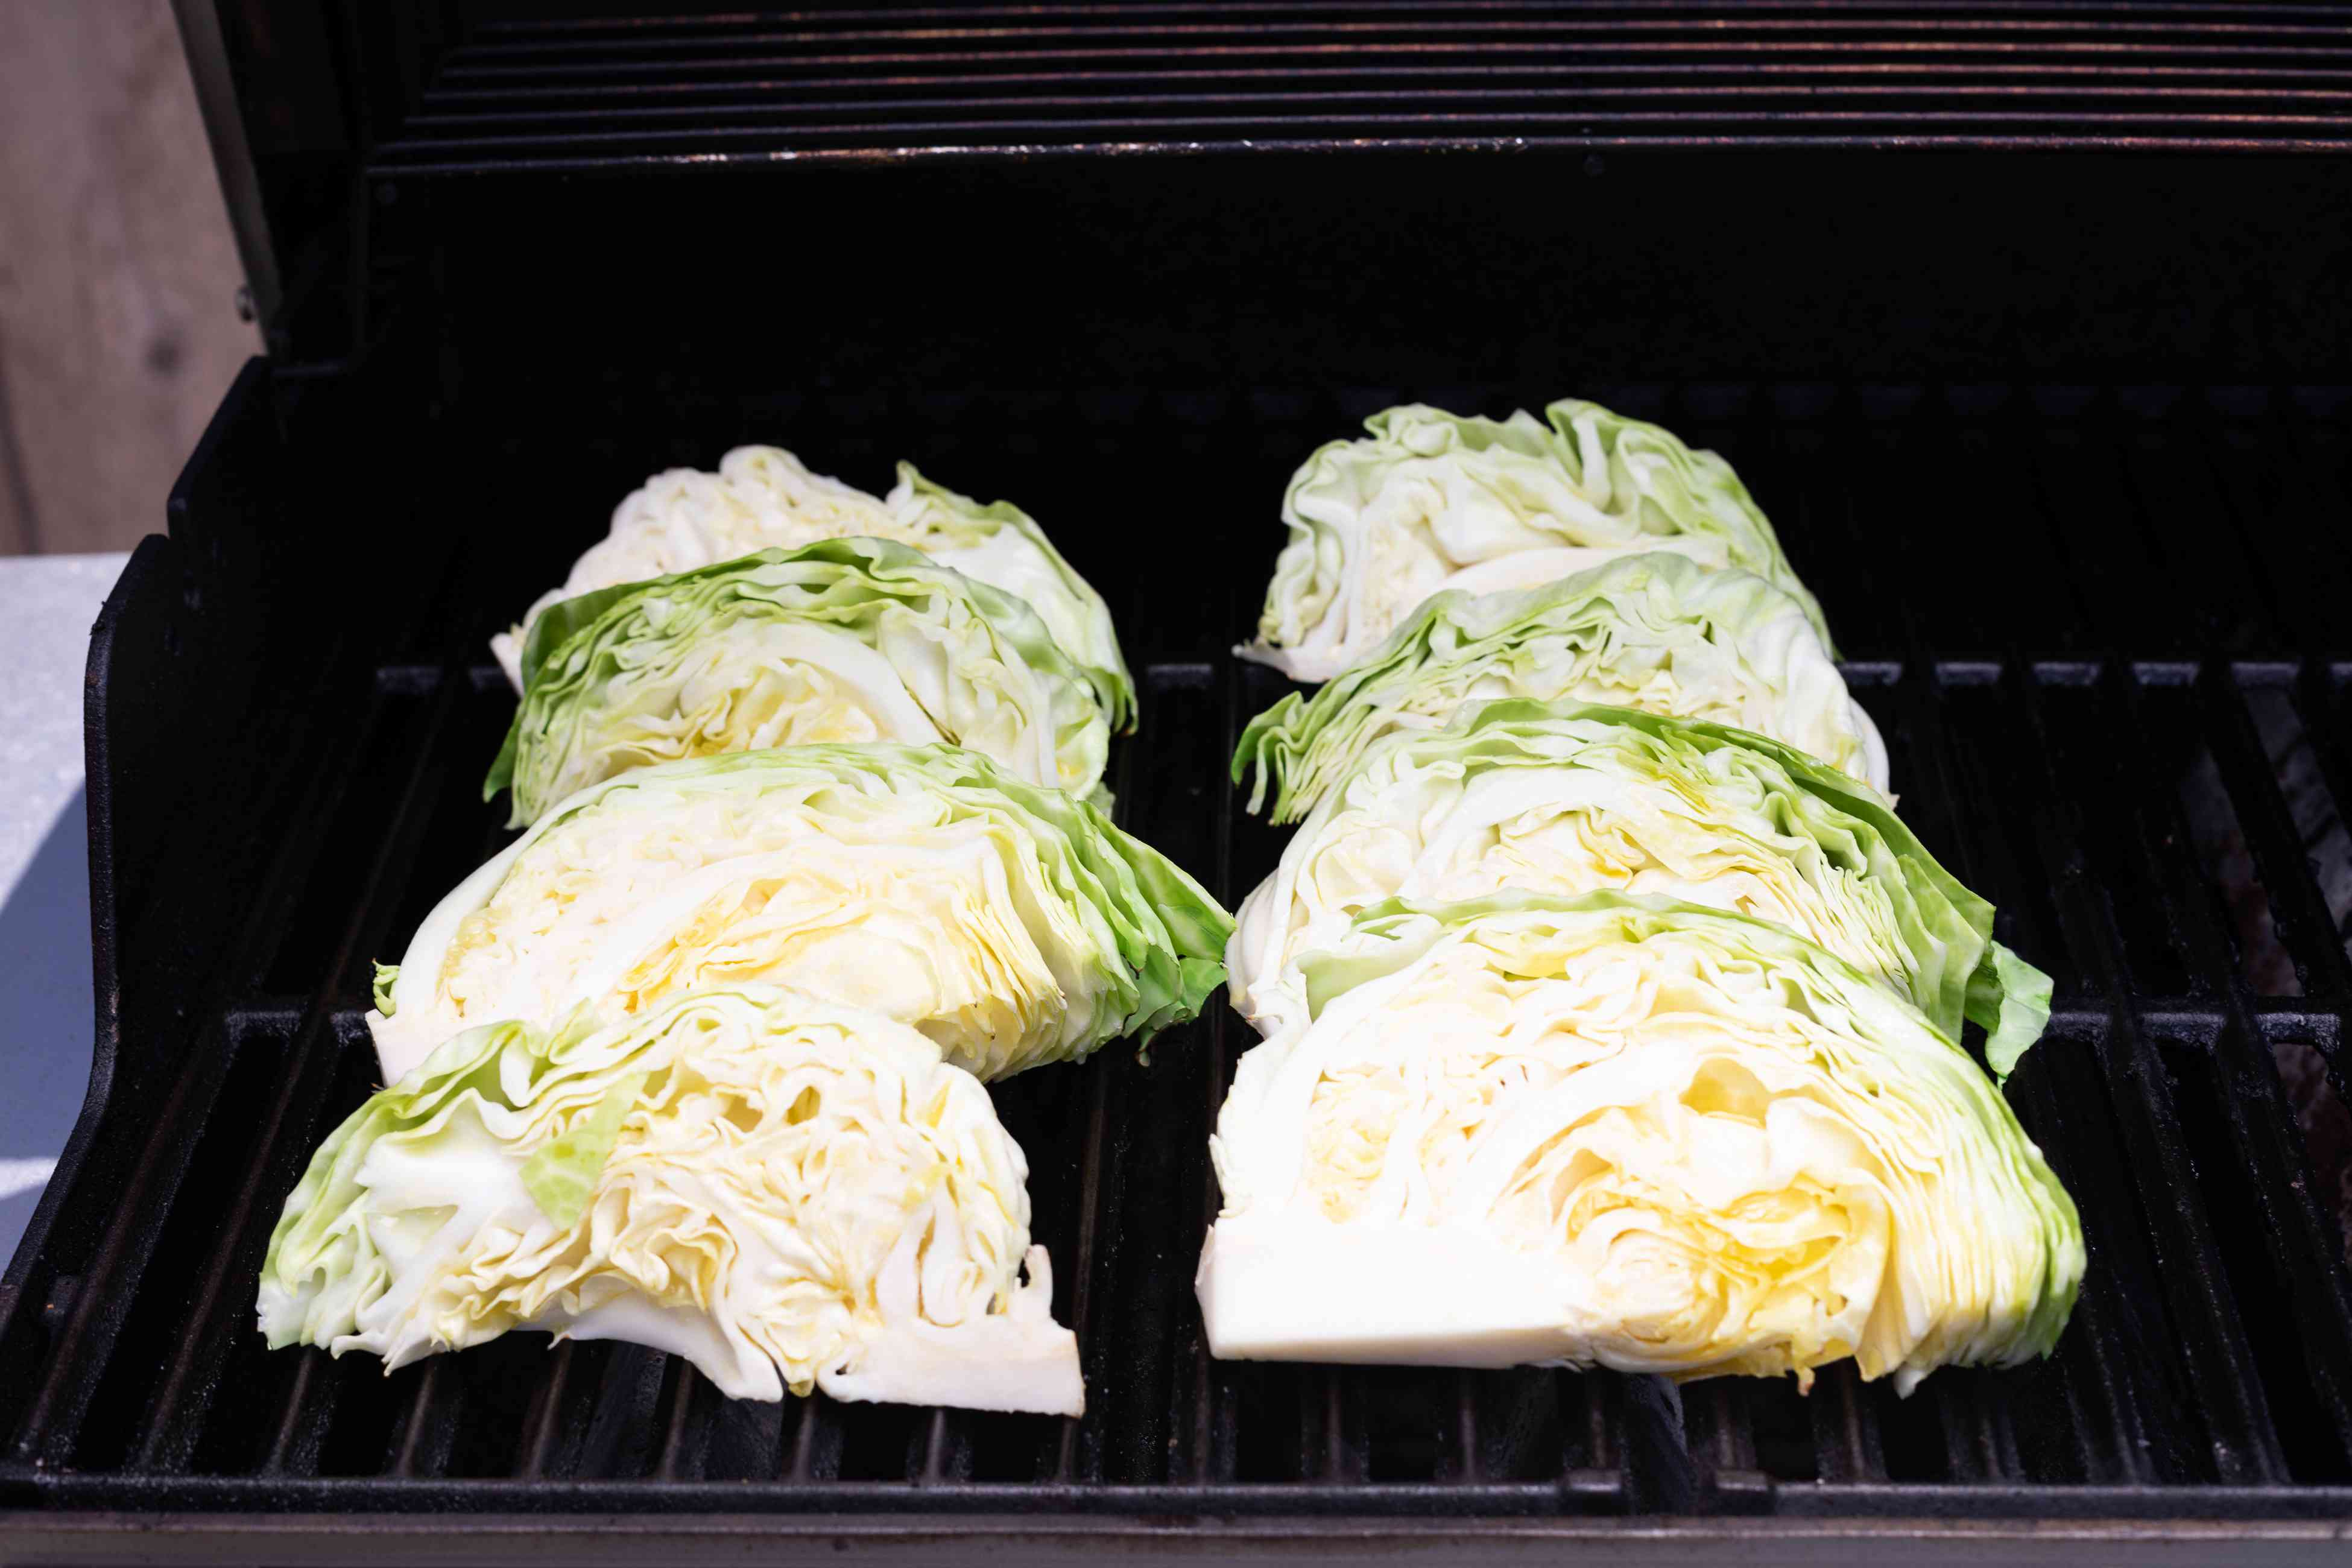 Cabbage wedges set on the grill for Grilled cabbage from Hetty McKinnon author of To Asia with Love